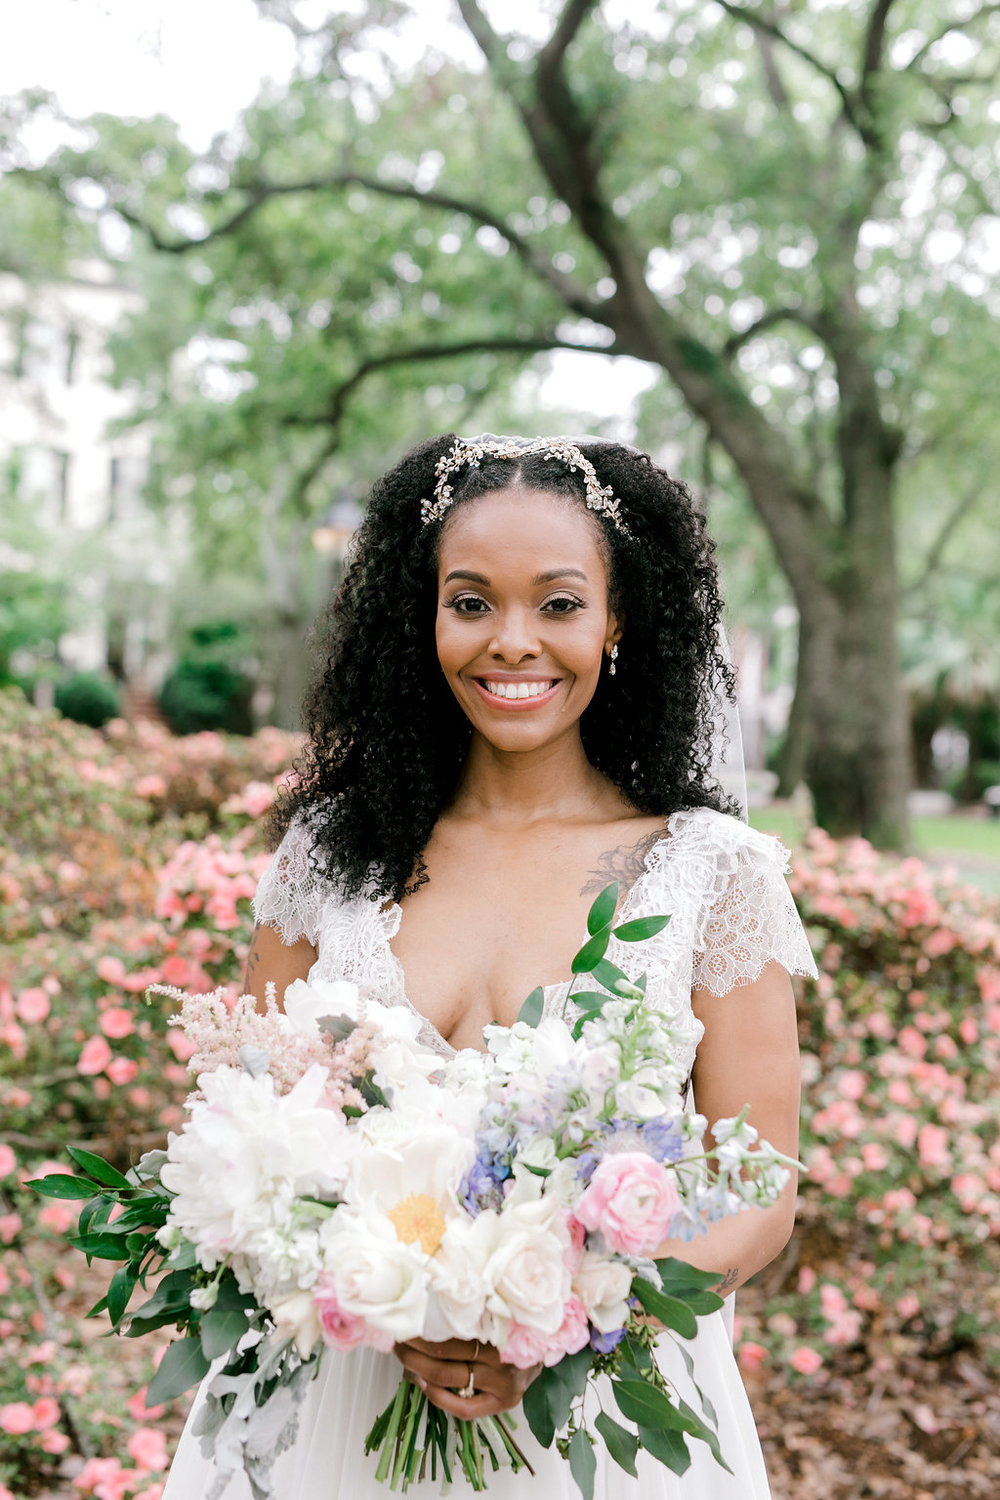 savannah-bridal-shop-i-and-b-florals-sonya-and-josh-colorful-rustic-boho-wedding-florals-at-soho-south-cafe-savannah-ga-wedding-danielle-george-photography-8.JPG